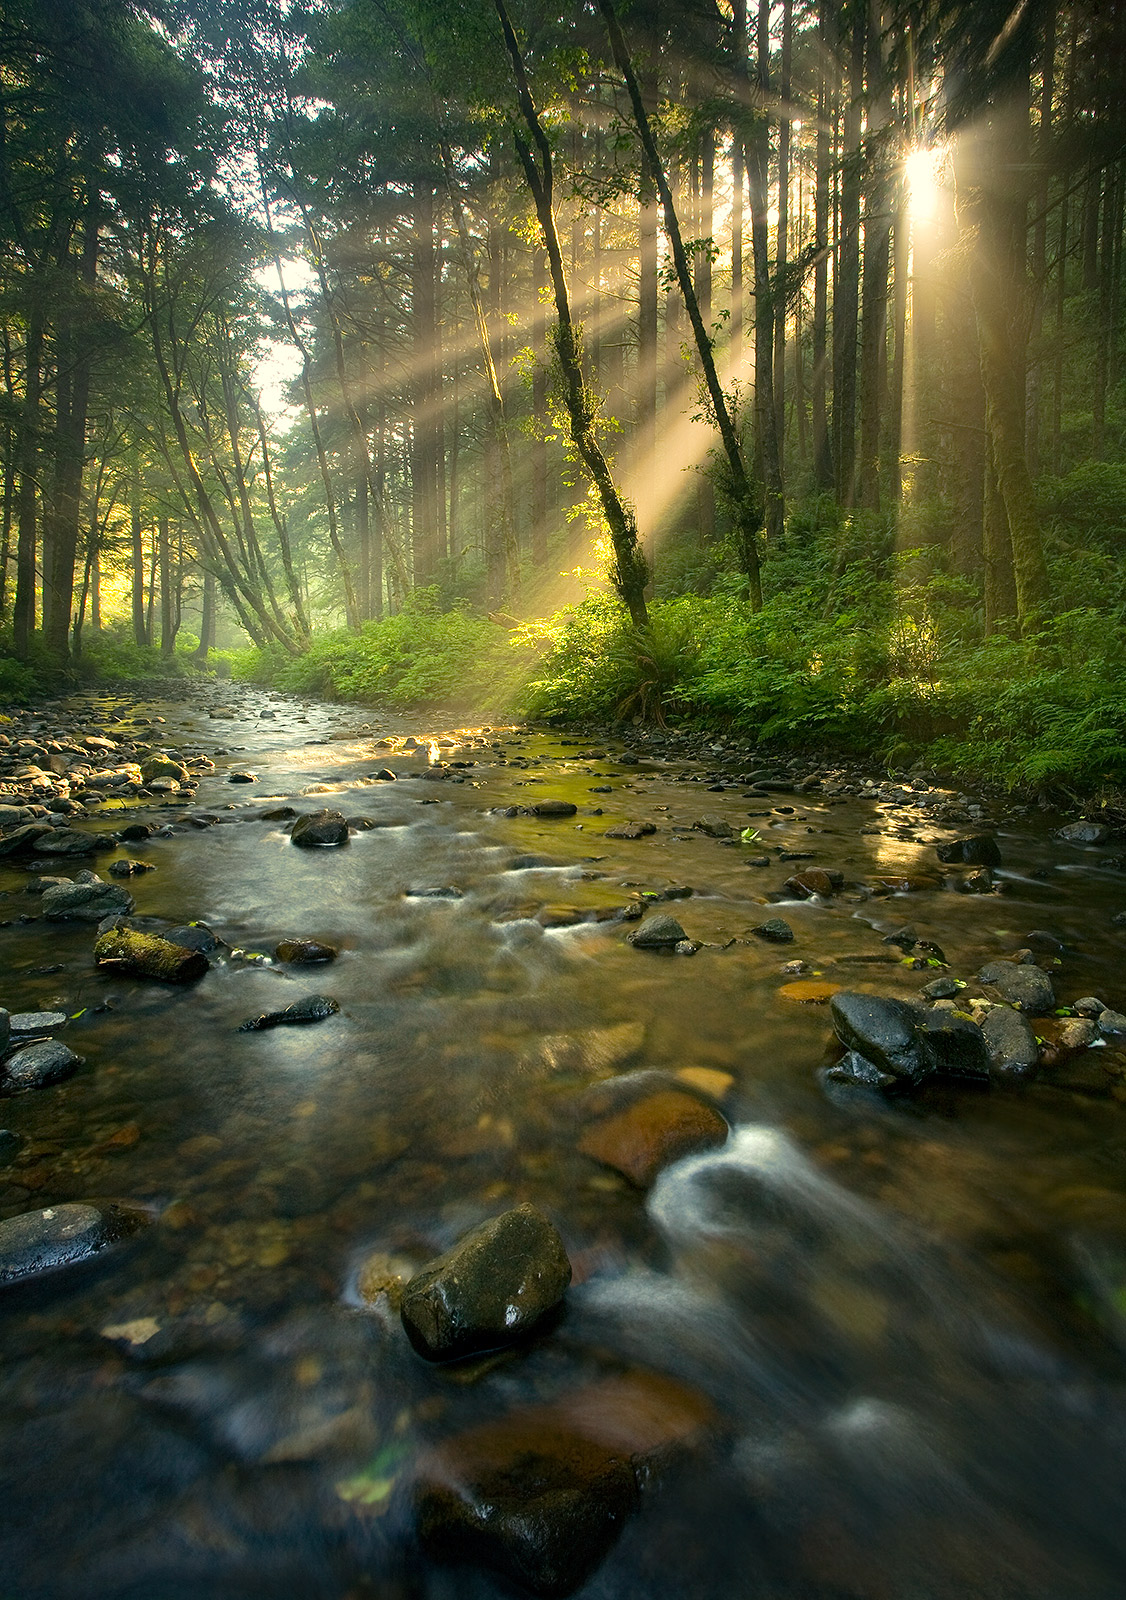 Rock Creek wilderness, wilderness, sun burst, trees, forest, creek, morning, photo